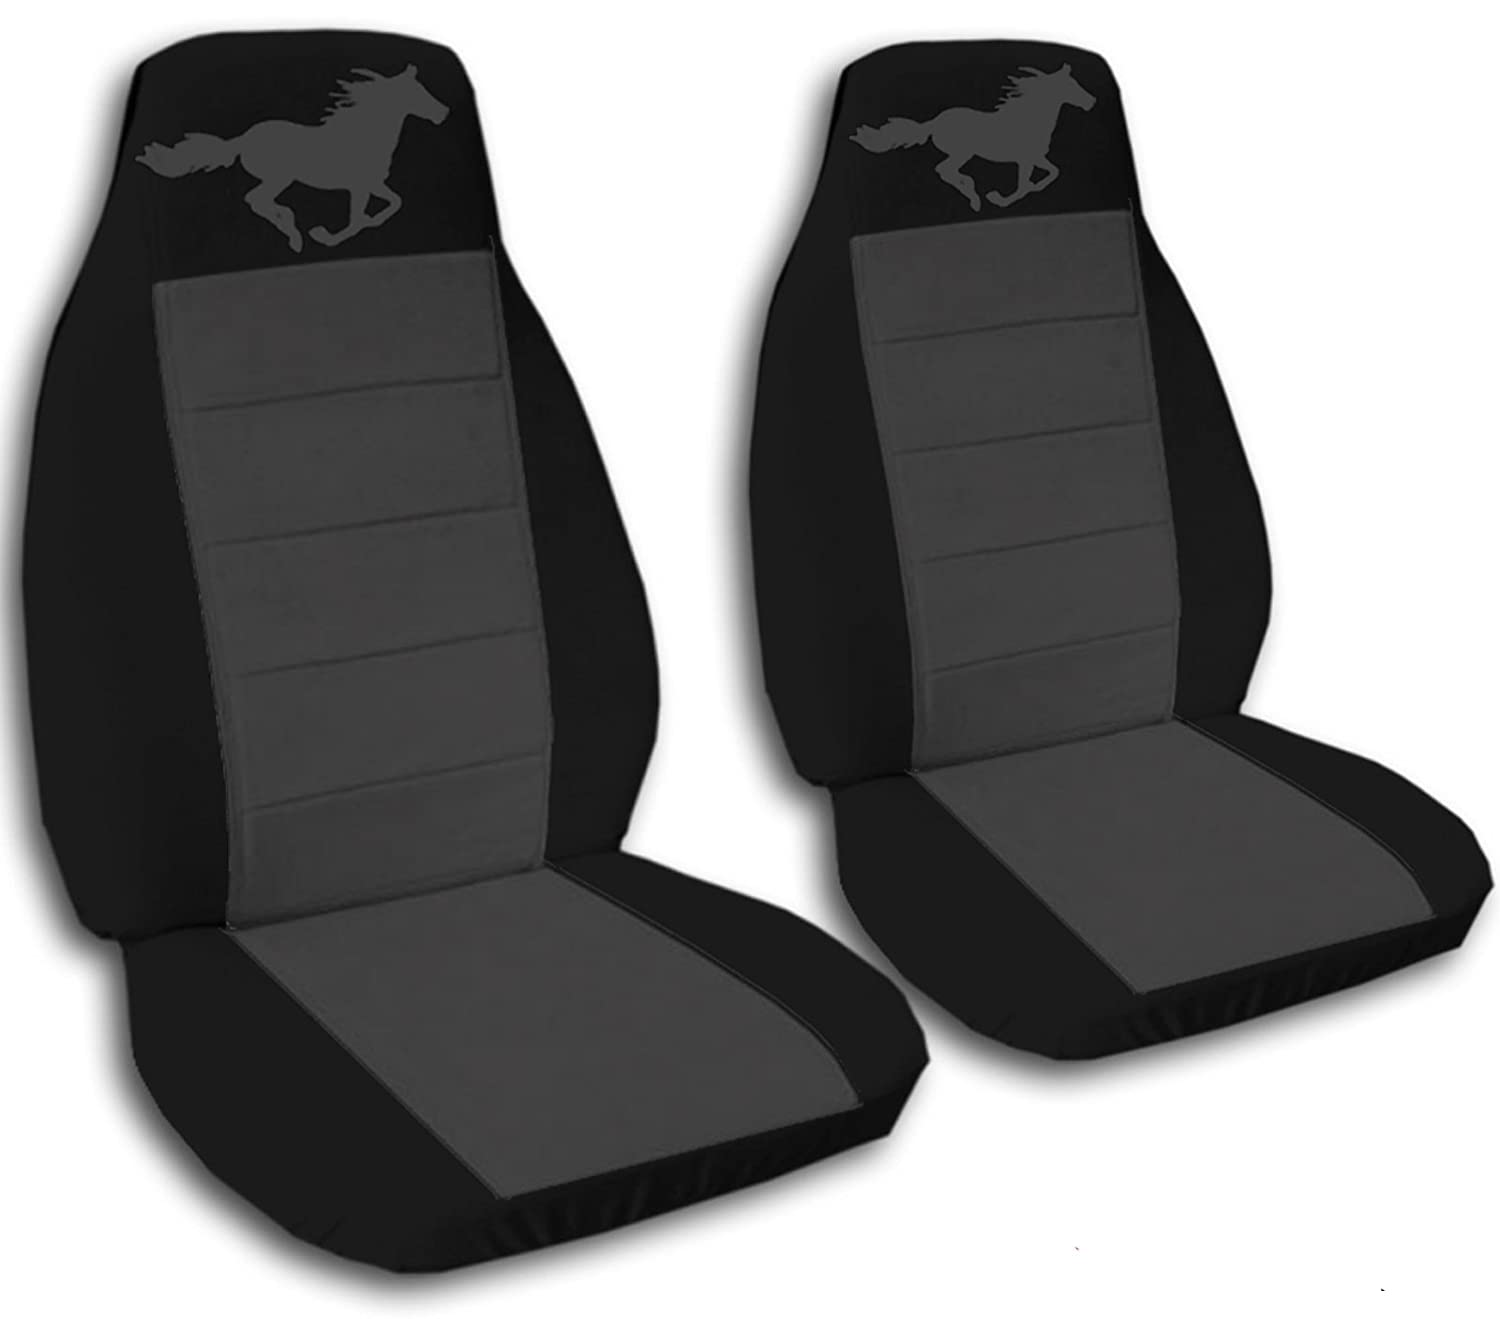 amazon com 2005 2006 2007 ford mustang seat covers black and